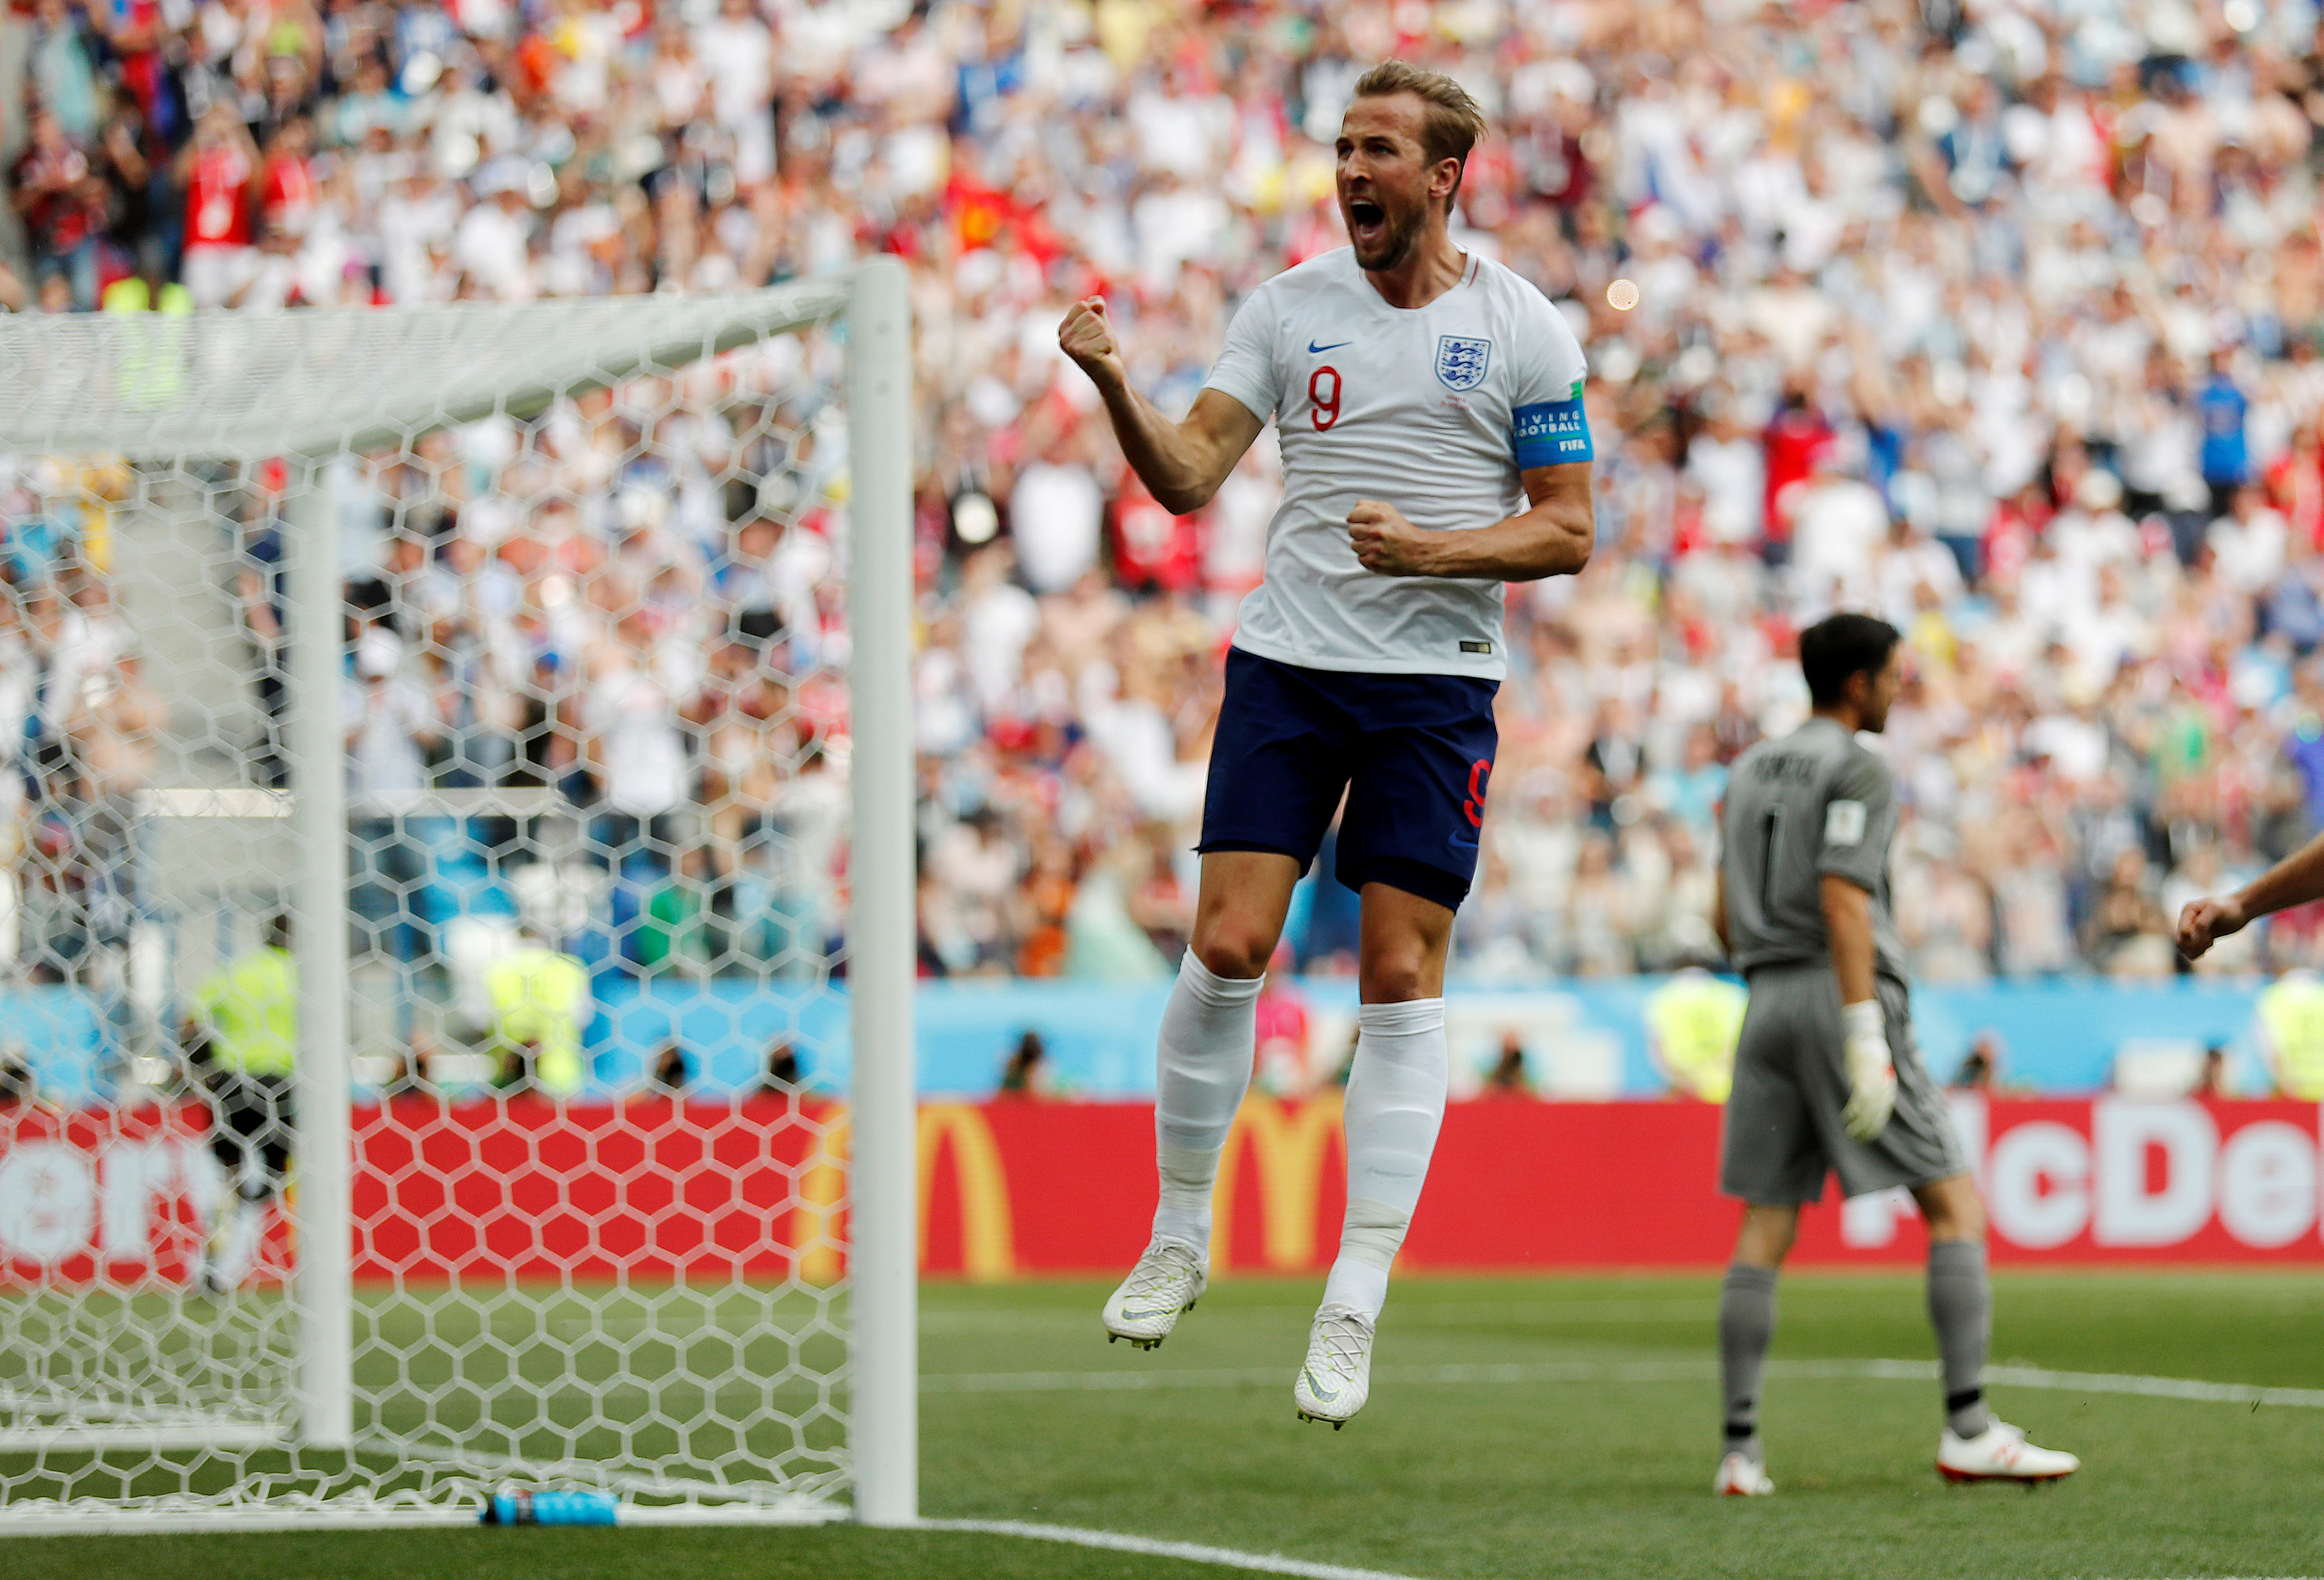 Englandrout Panama 6-1 with Kane hat-trick